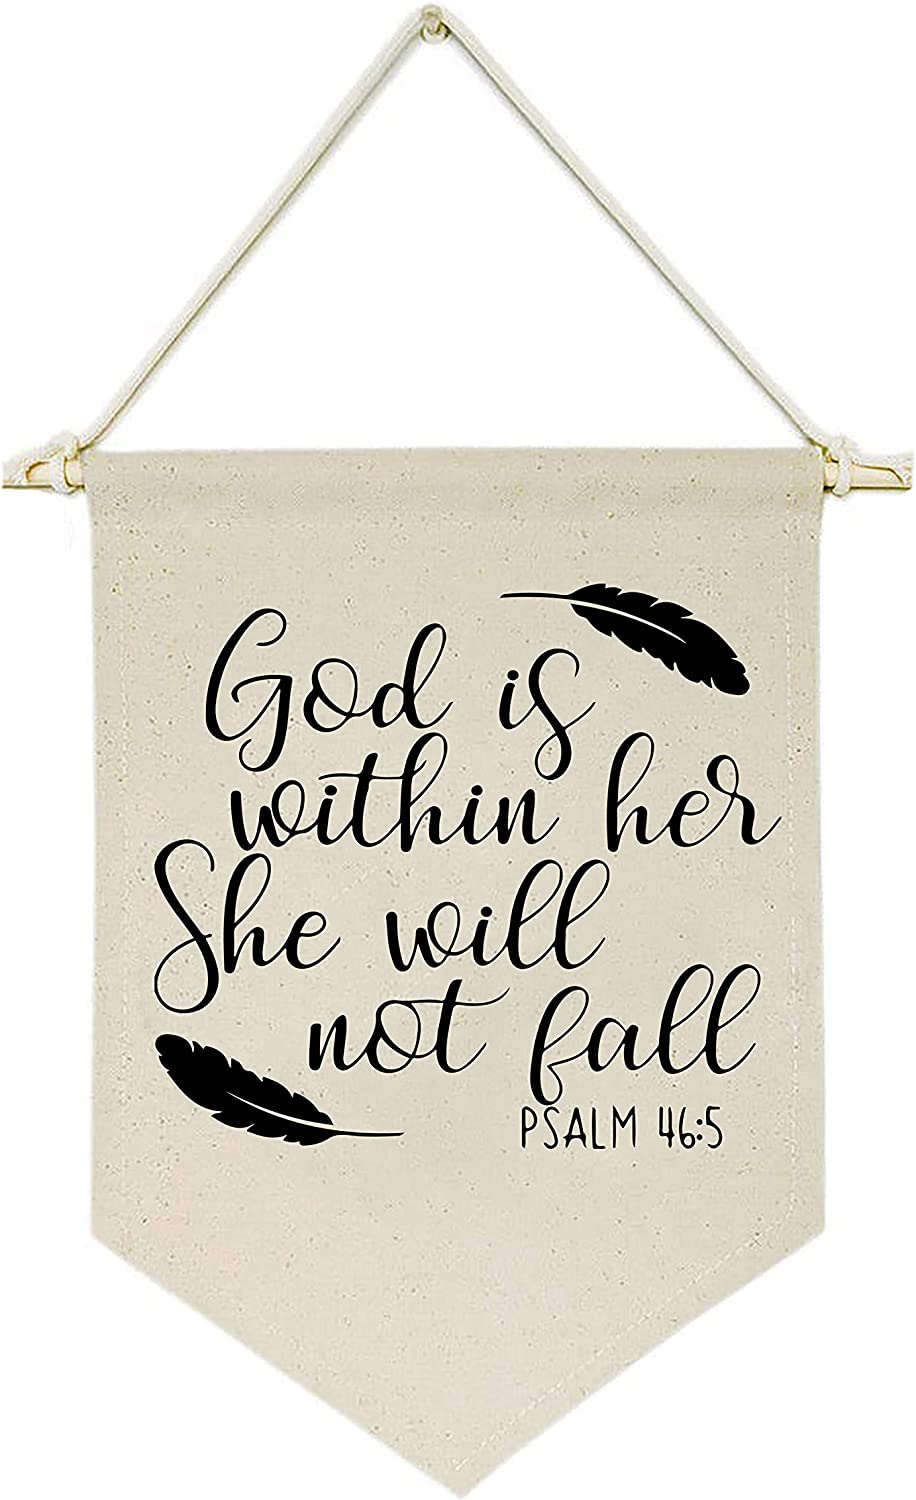 God Is Within Her - Canvas Hanging Flag Banner Wall Sign Decor - Inspirational Gift for Nursery,Kids Room,Living Room,Bedroom,Front Porch Decor - Psalm 46:5 - Bible Verse Scripture Wall Décor -Feather